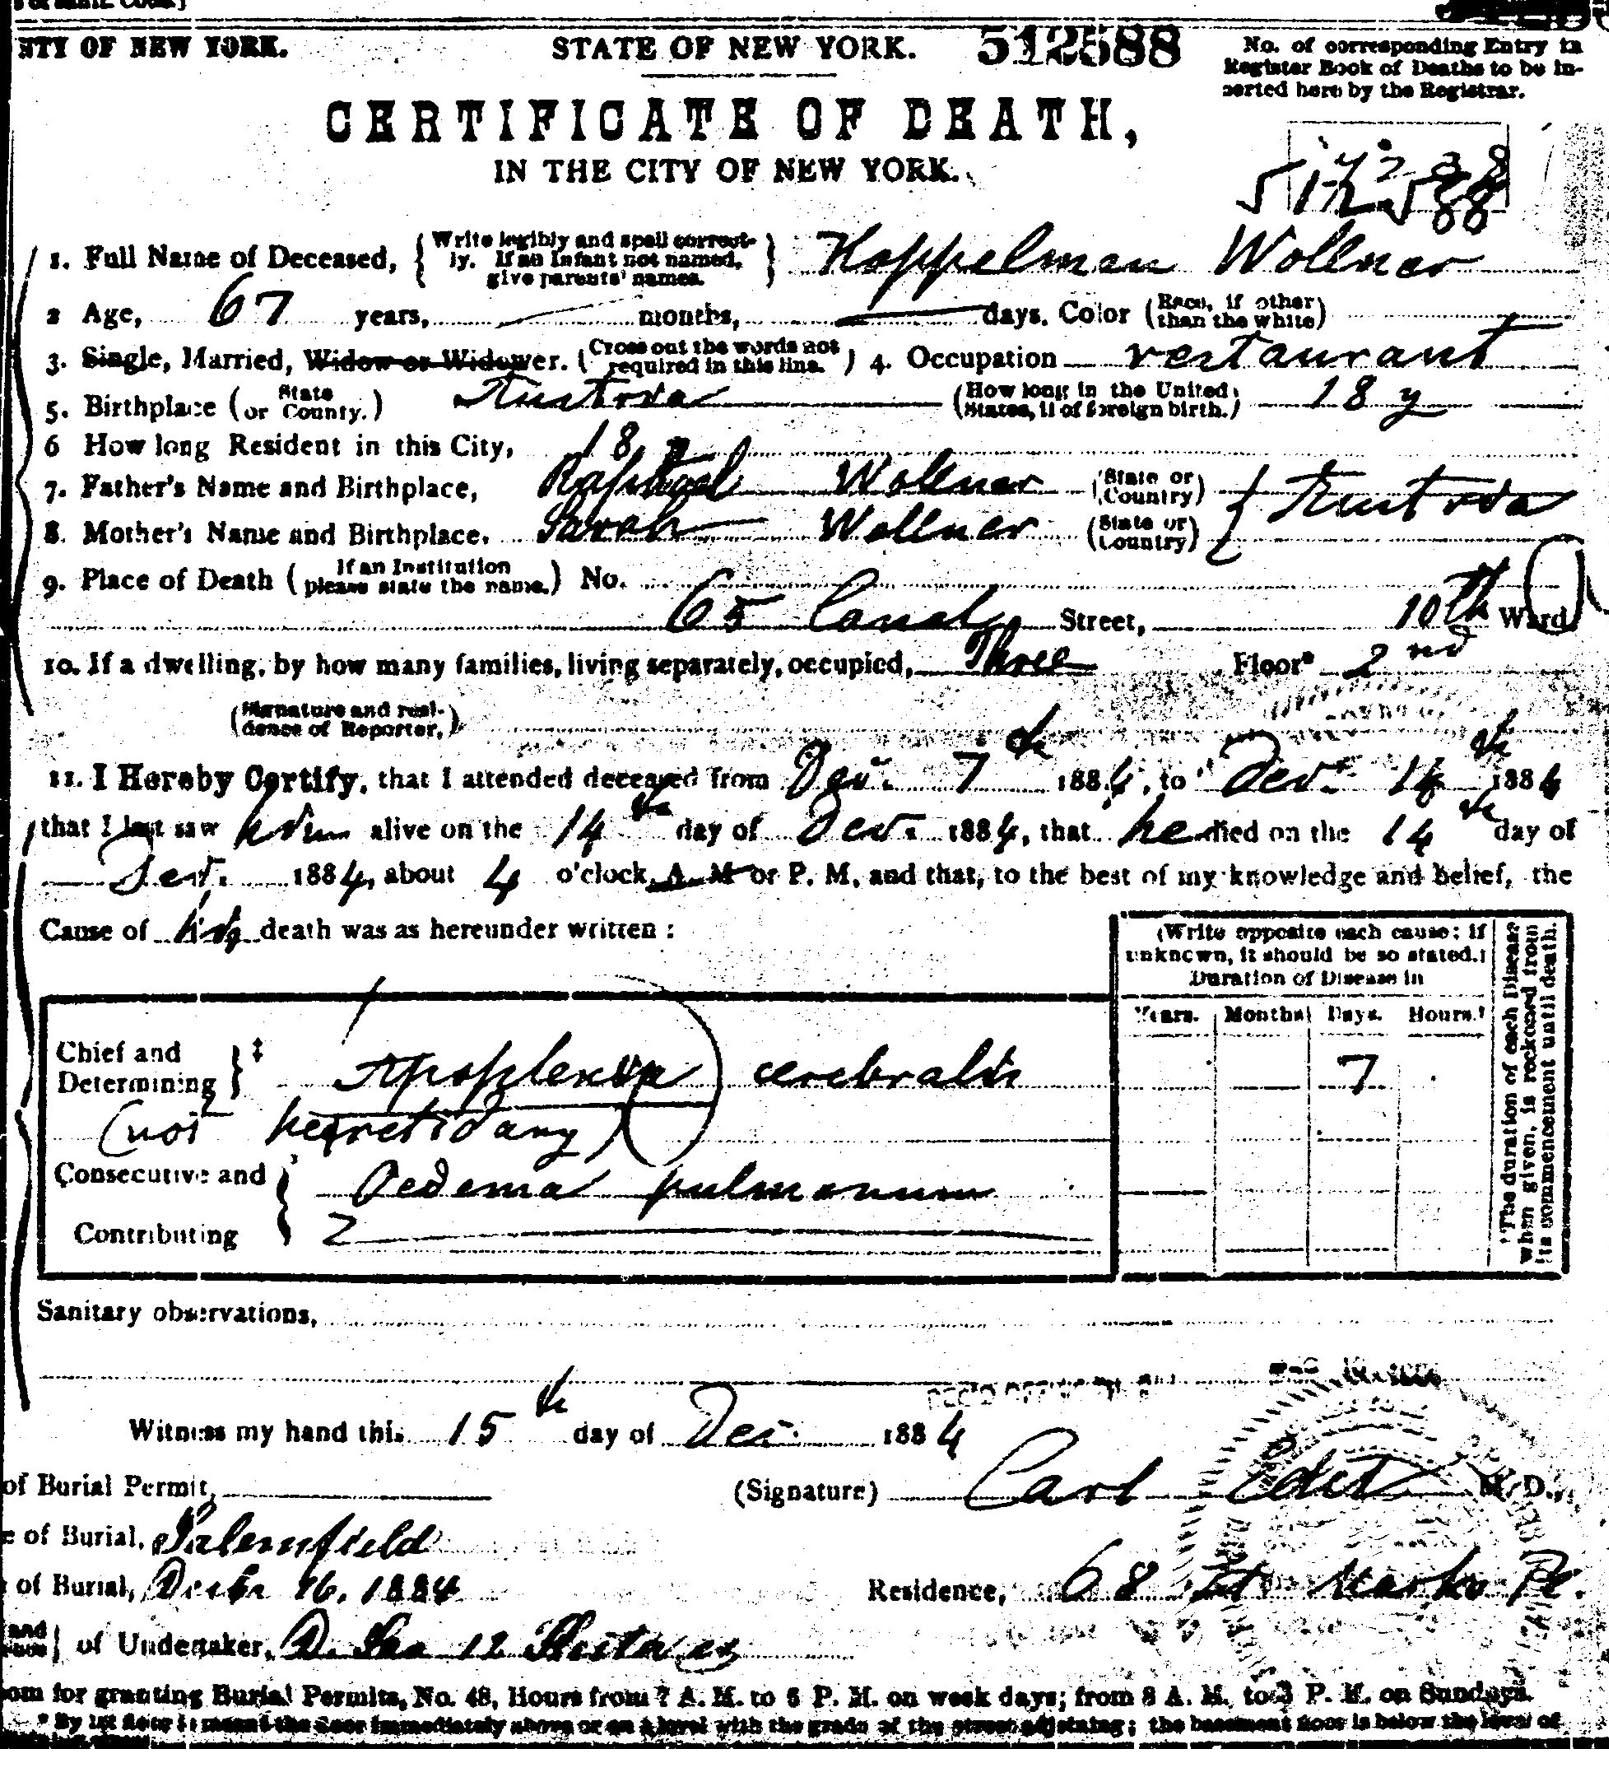 Find your roots family history and genealogy services dr cp koppelman wollners death certificate xflitez Image collections